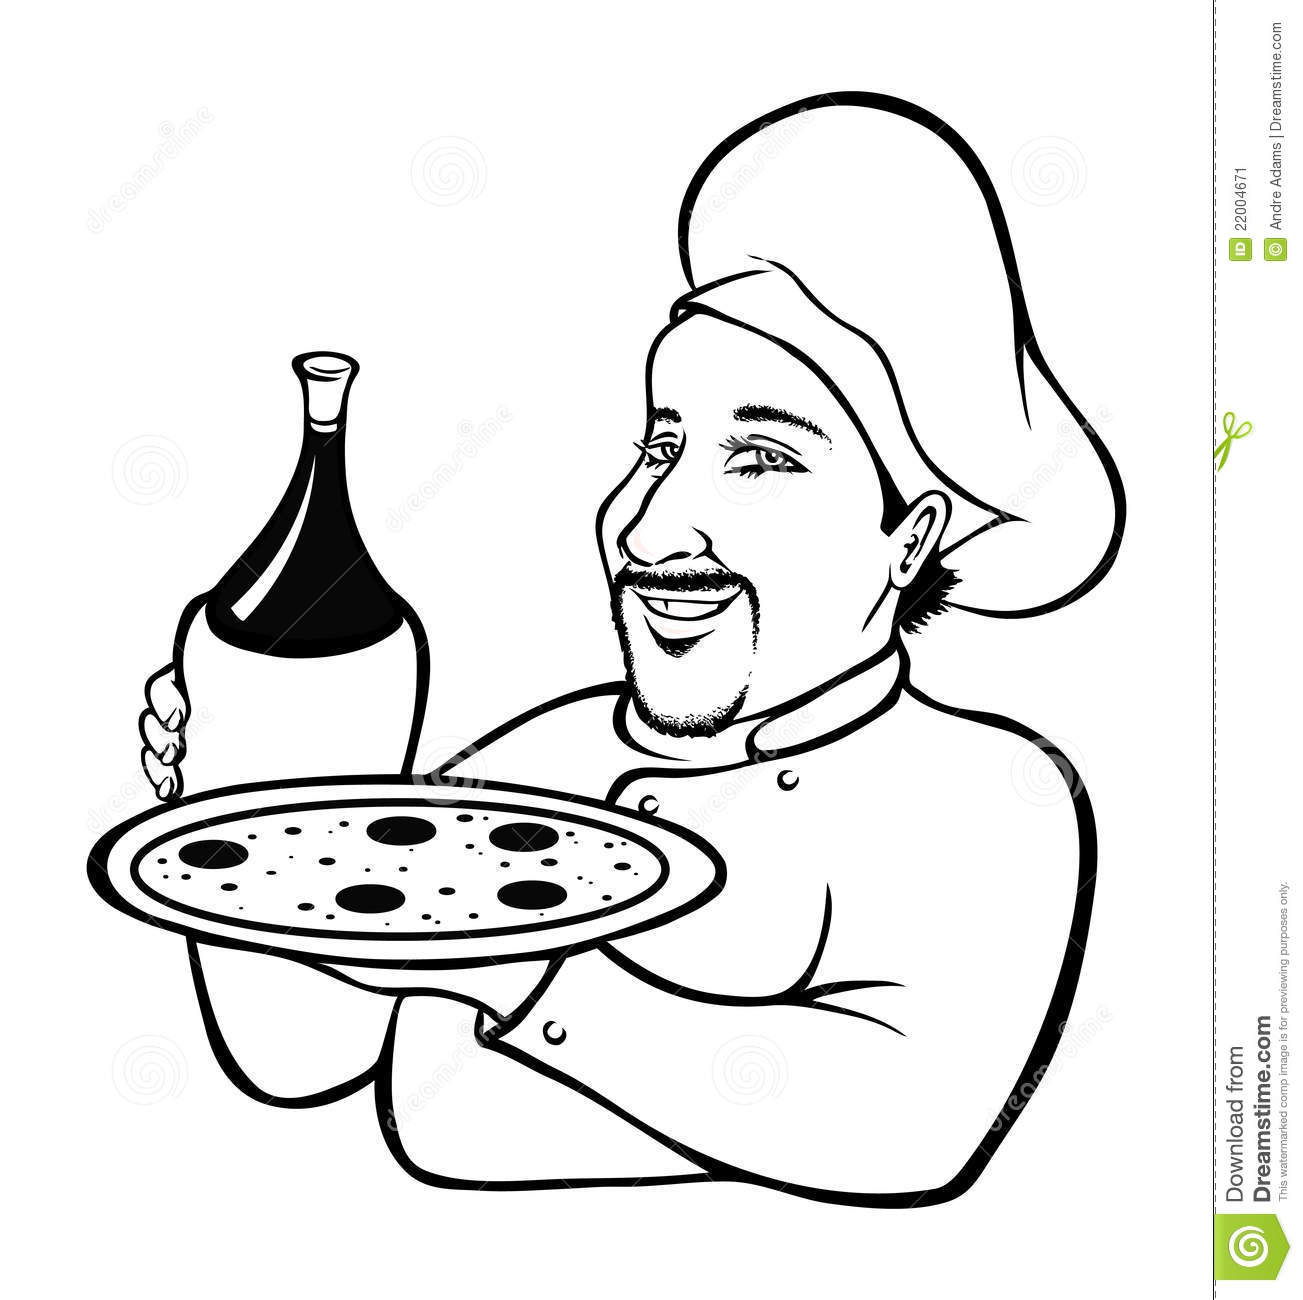 Italian Chef Coloring Book Stock Image - Image: 22004671